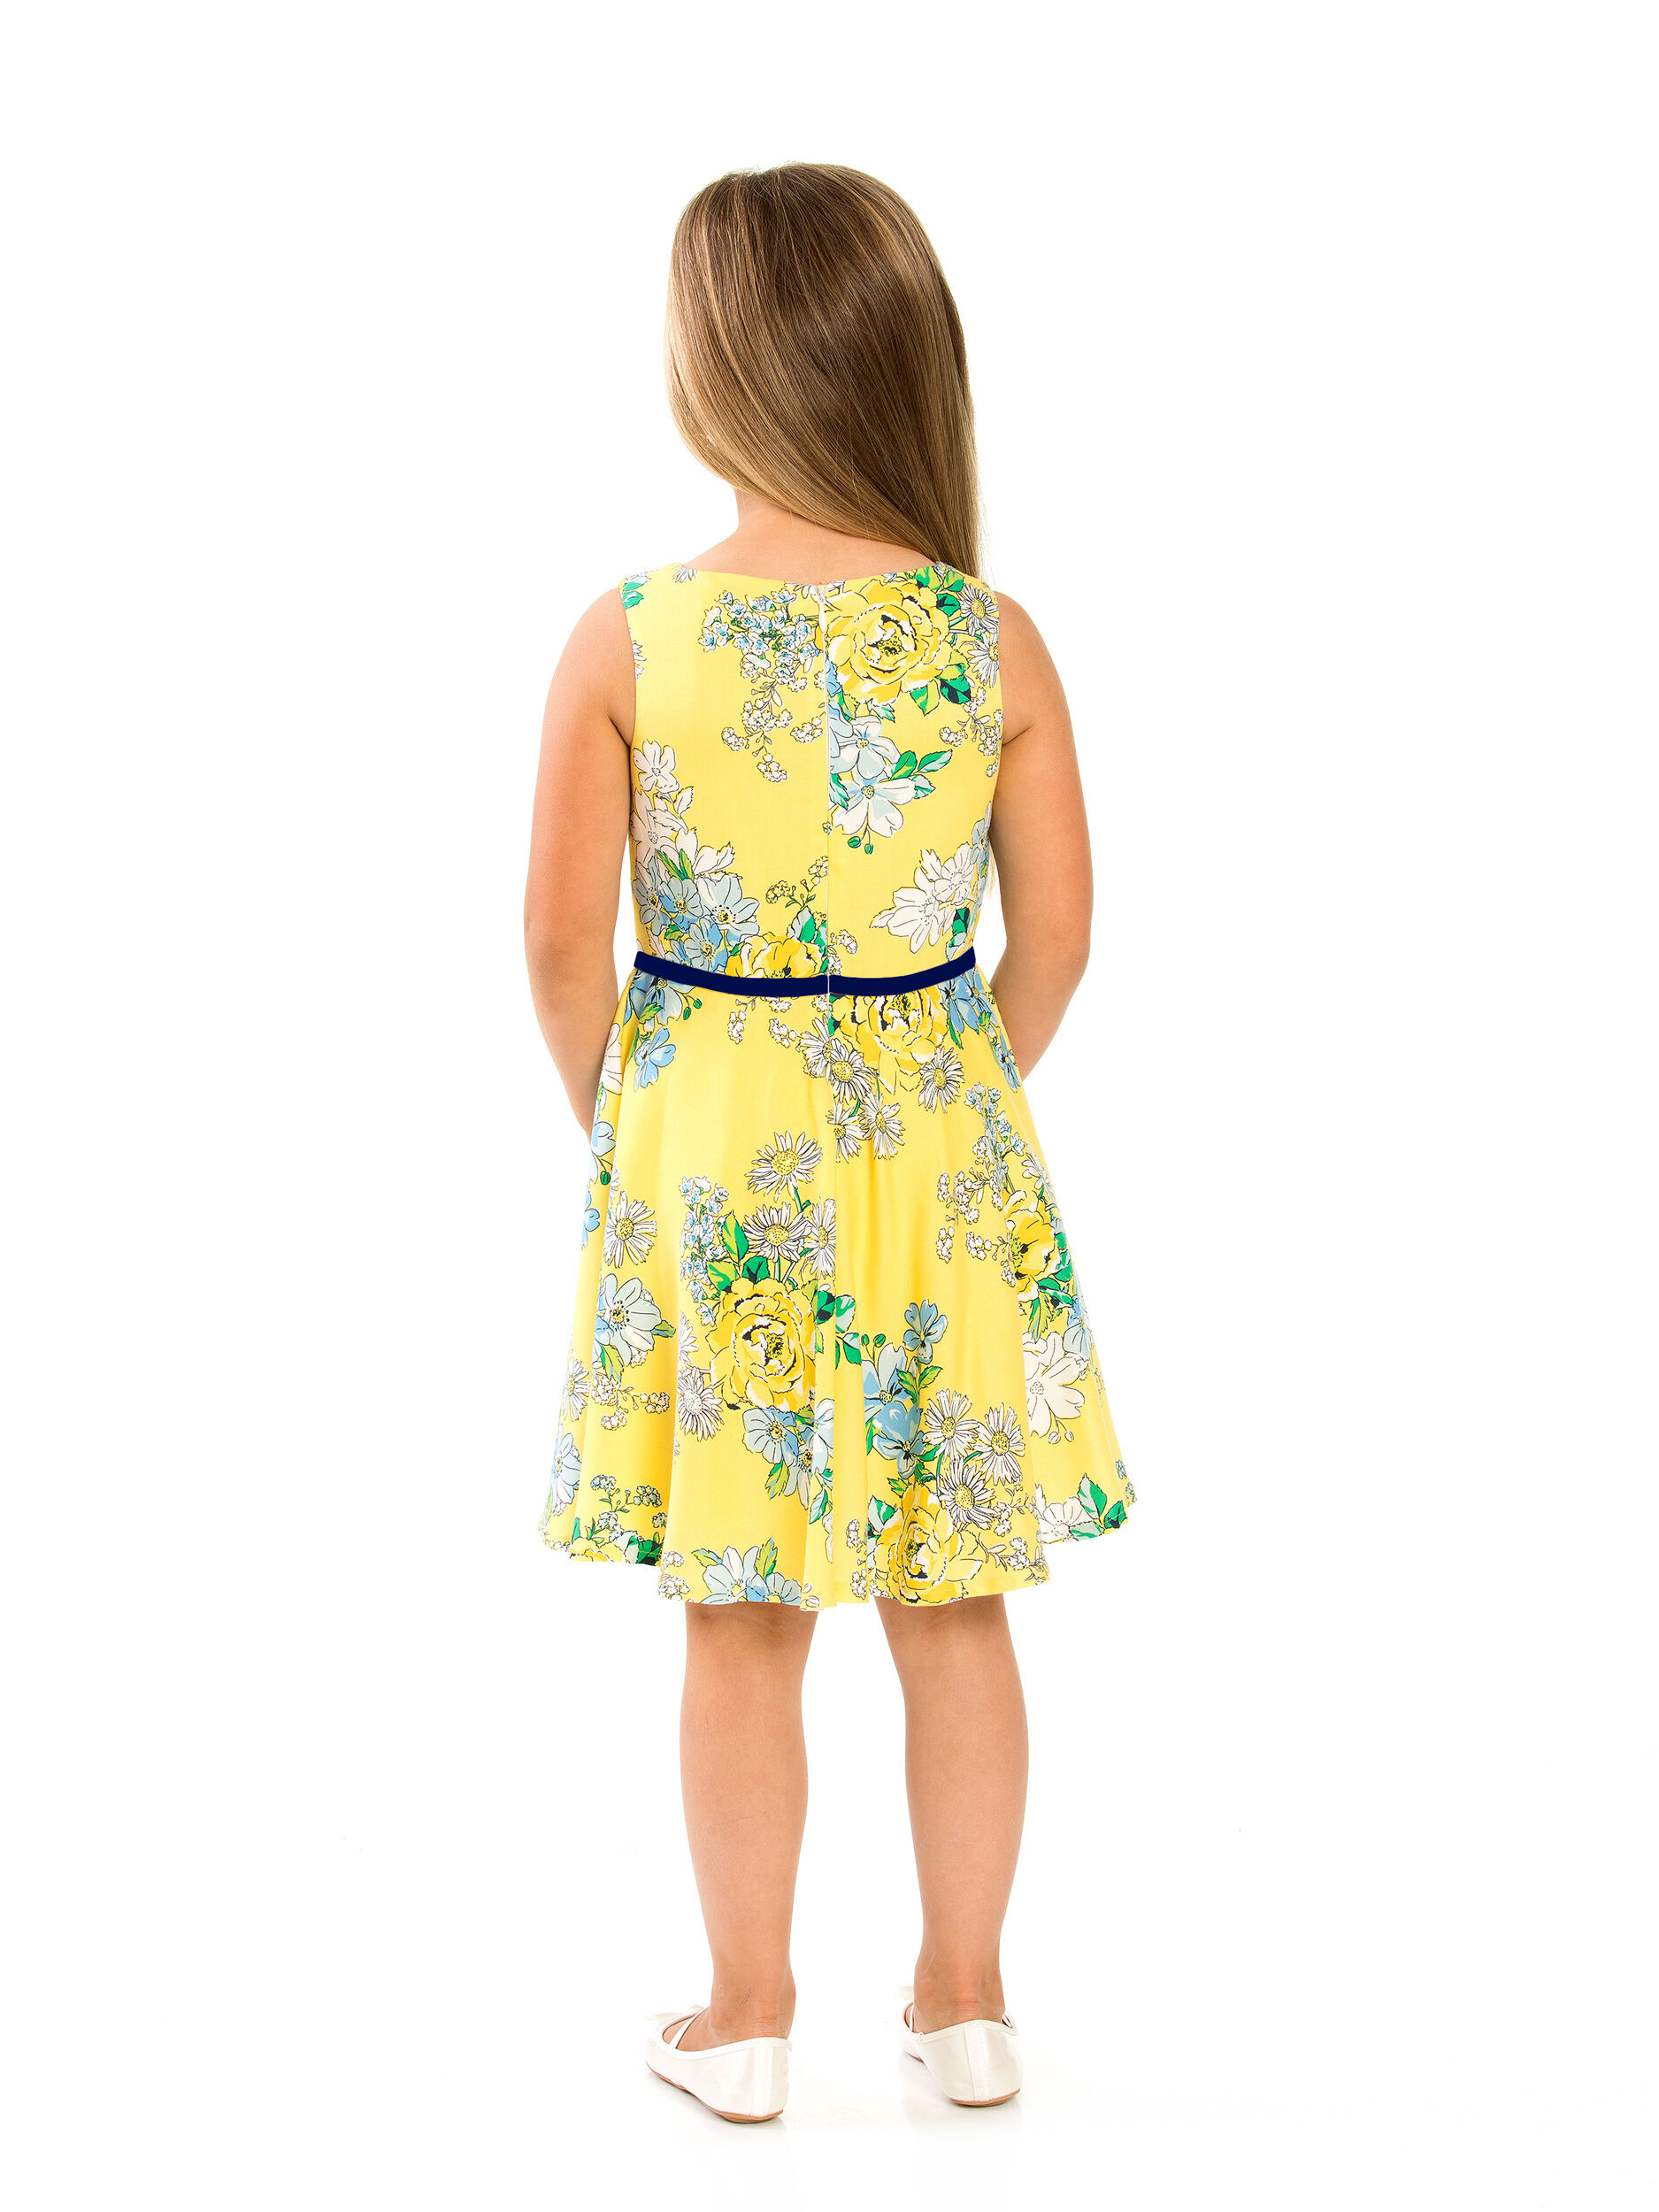 8-14 Girls Circle Skirt Dress